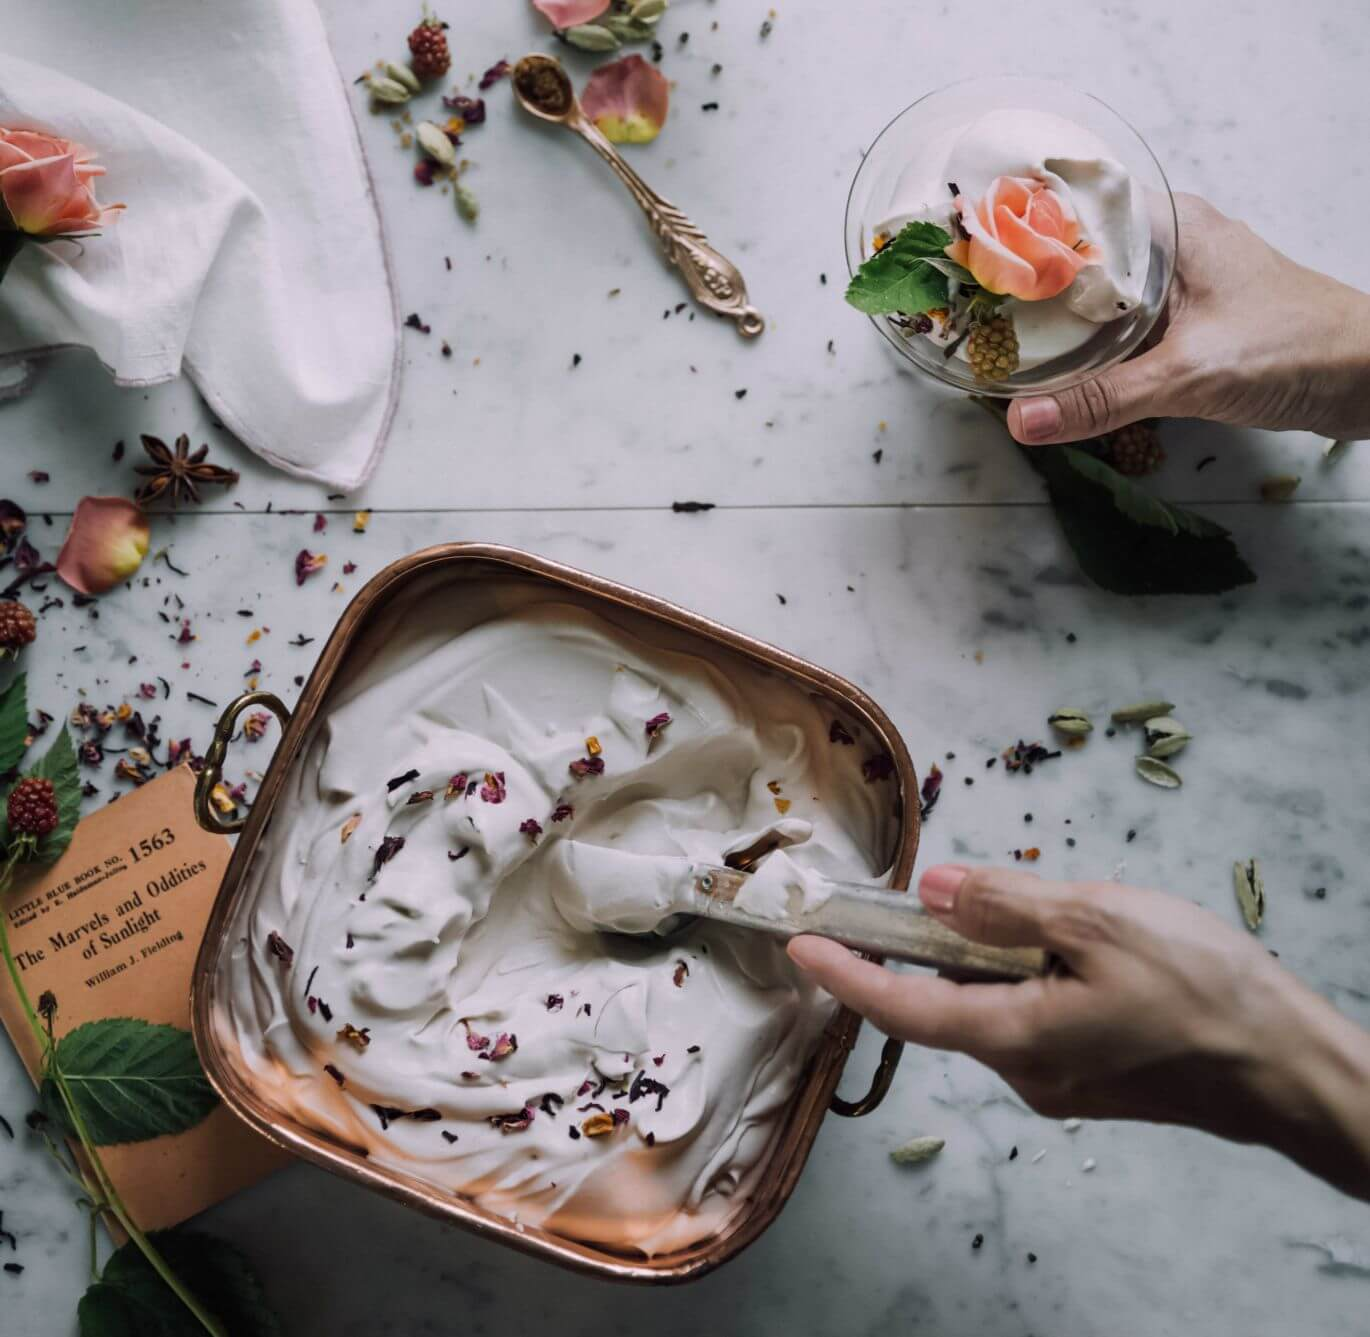 Preparation of skin cream with flowers and herbs